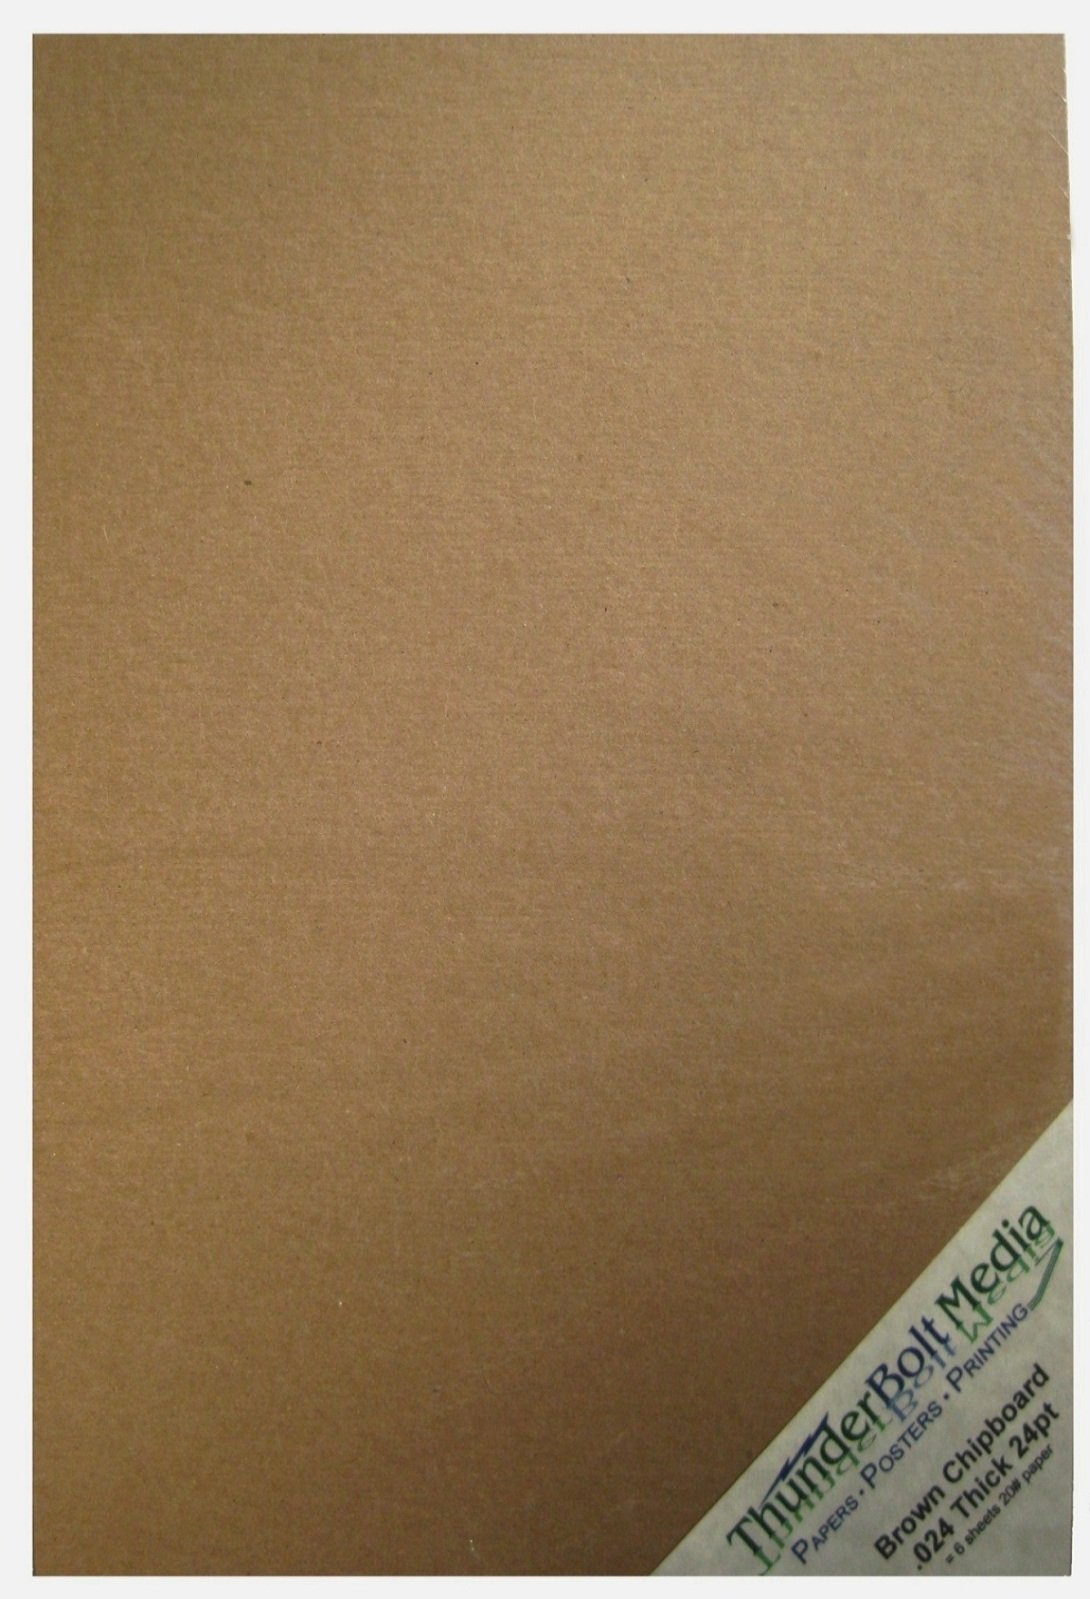 5 X 7 Photo Card Frame Size 5X7 Inches 25 Sheets Chipboard 24pt White 1 Side Point Light Medium Weight Thickness PaperBoard .024 Caliper White Coated Cardboard Paper